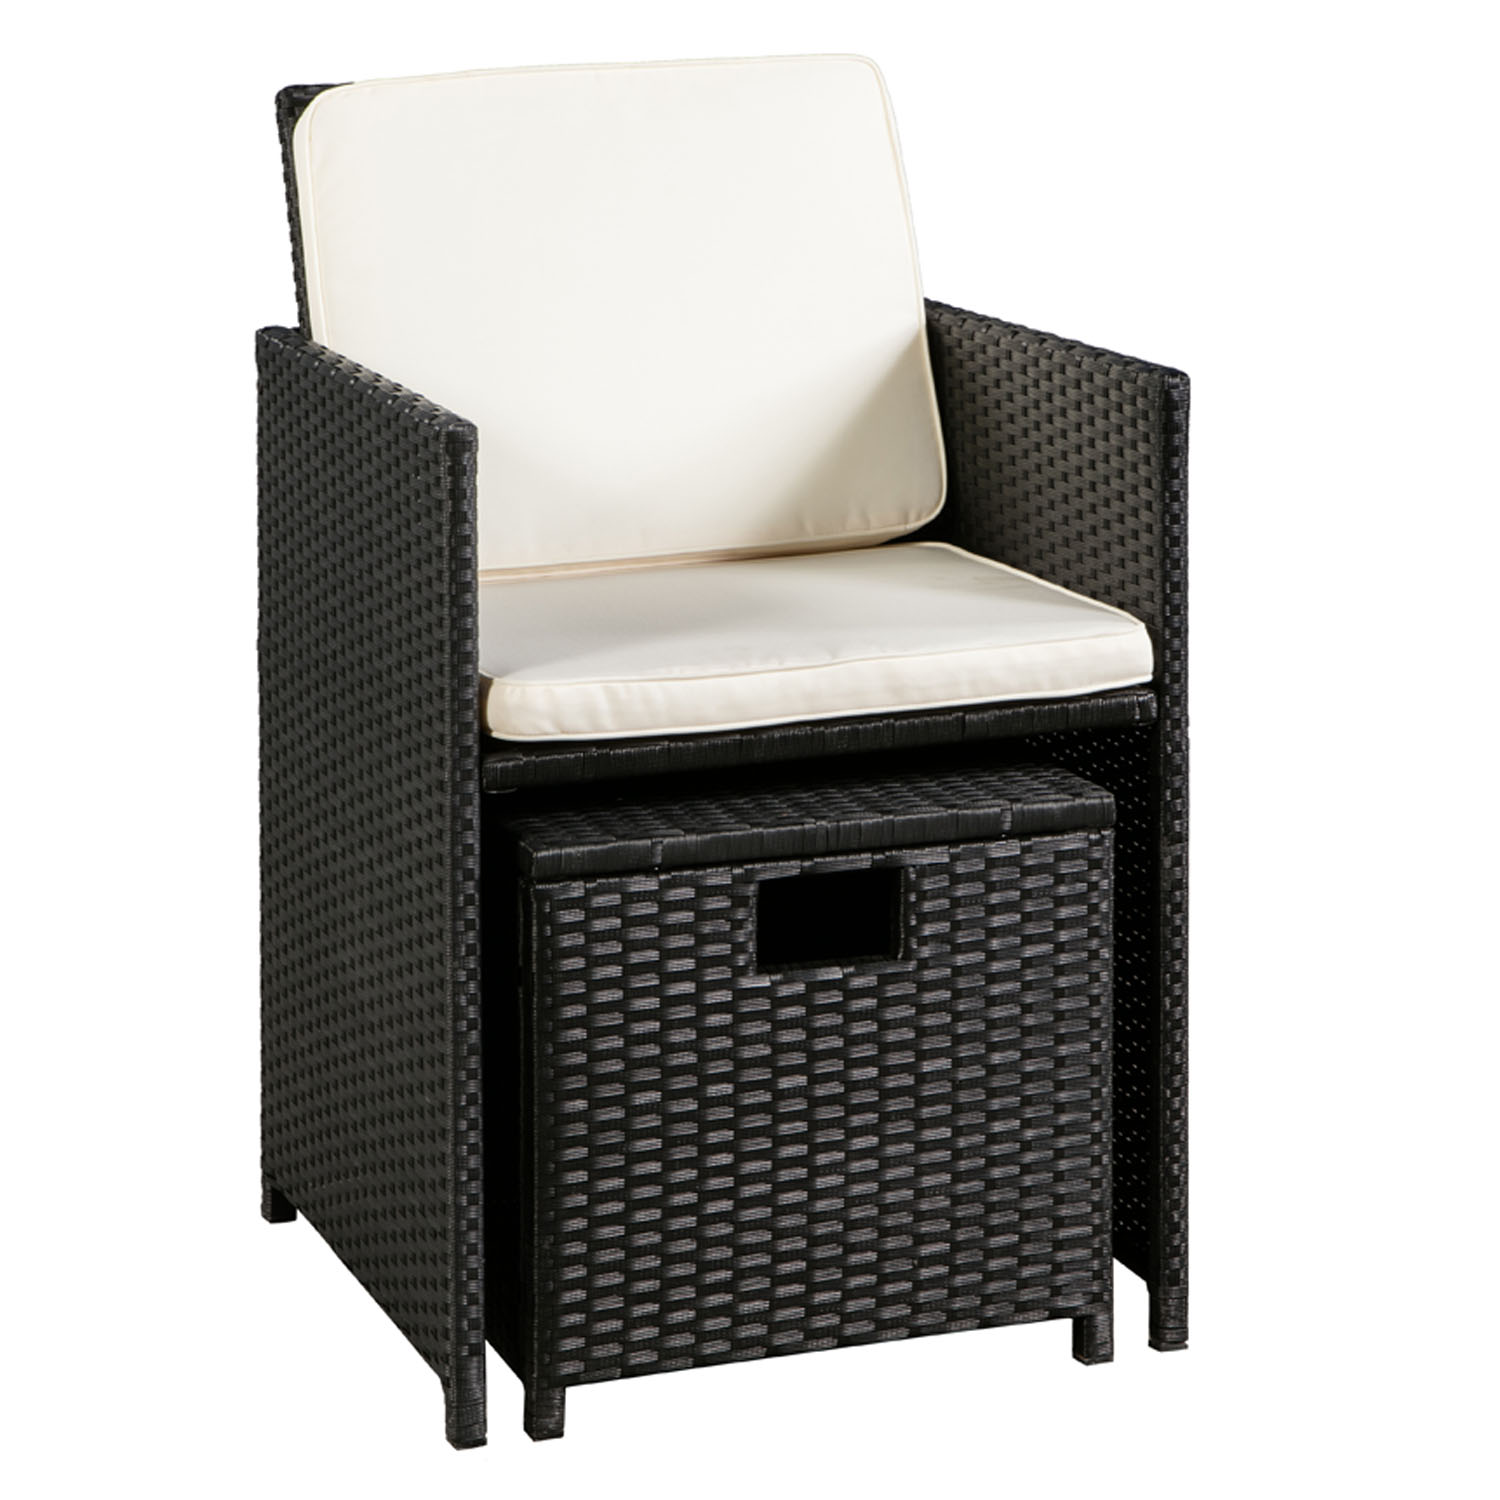 polyrattan gartenm bel cube essgruppe sitzgruppe rattan. Black Bedroom Furniture Sets. Home Design Ideas